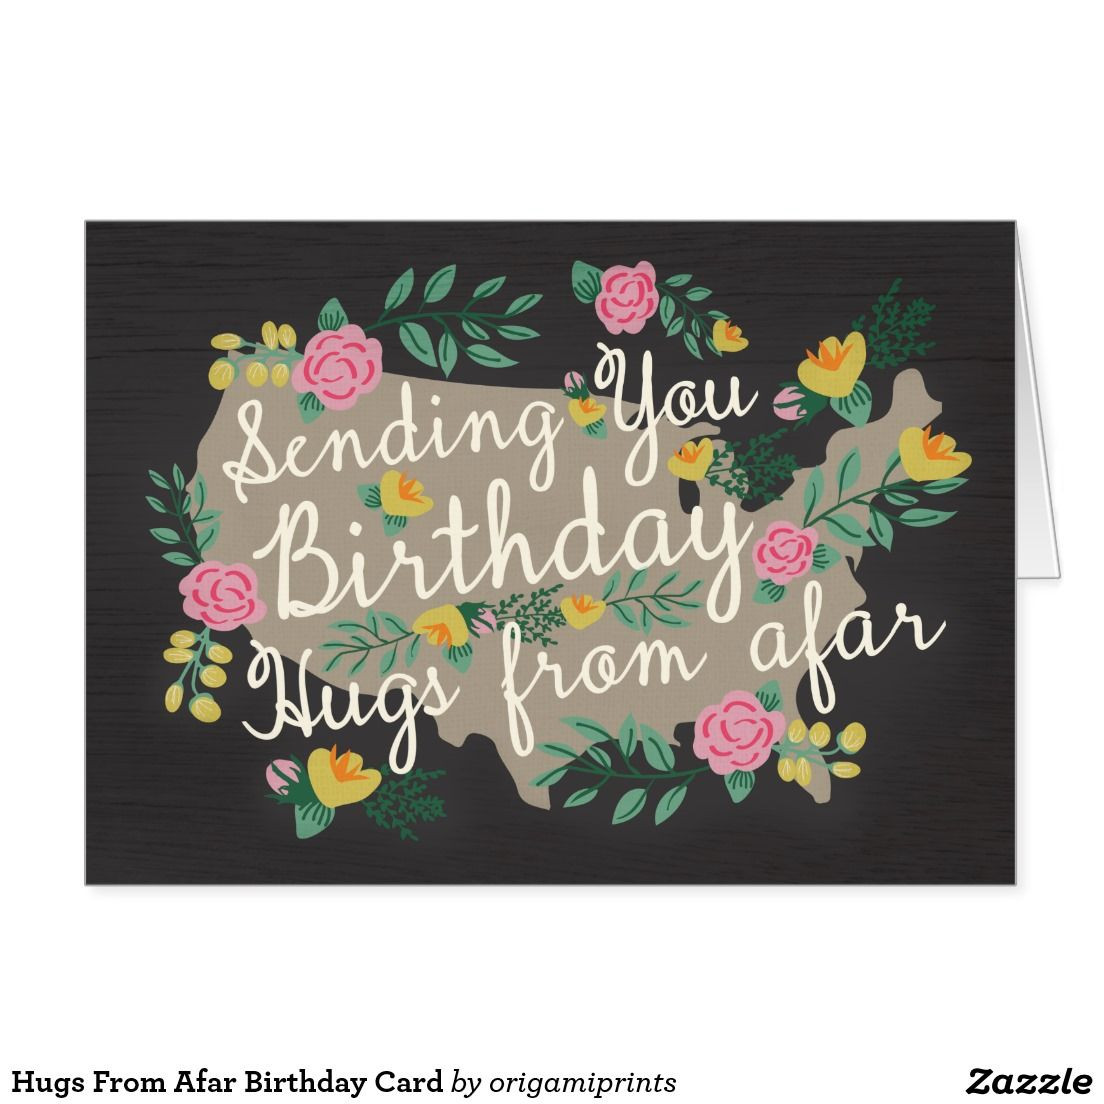 Hugs from afar birthday card america pinterest hug shop hugs from afar birthday card created by origamiprints kristyandbryce Images